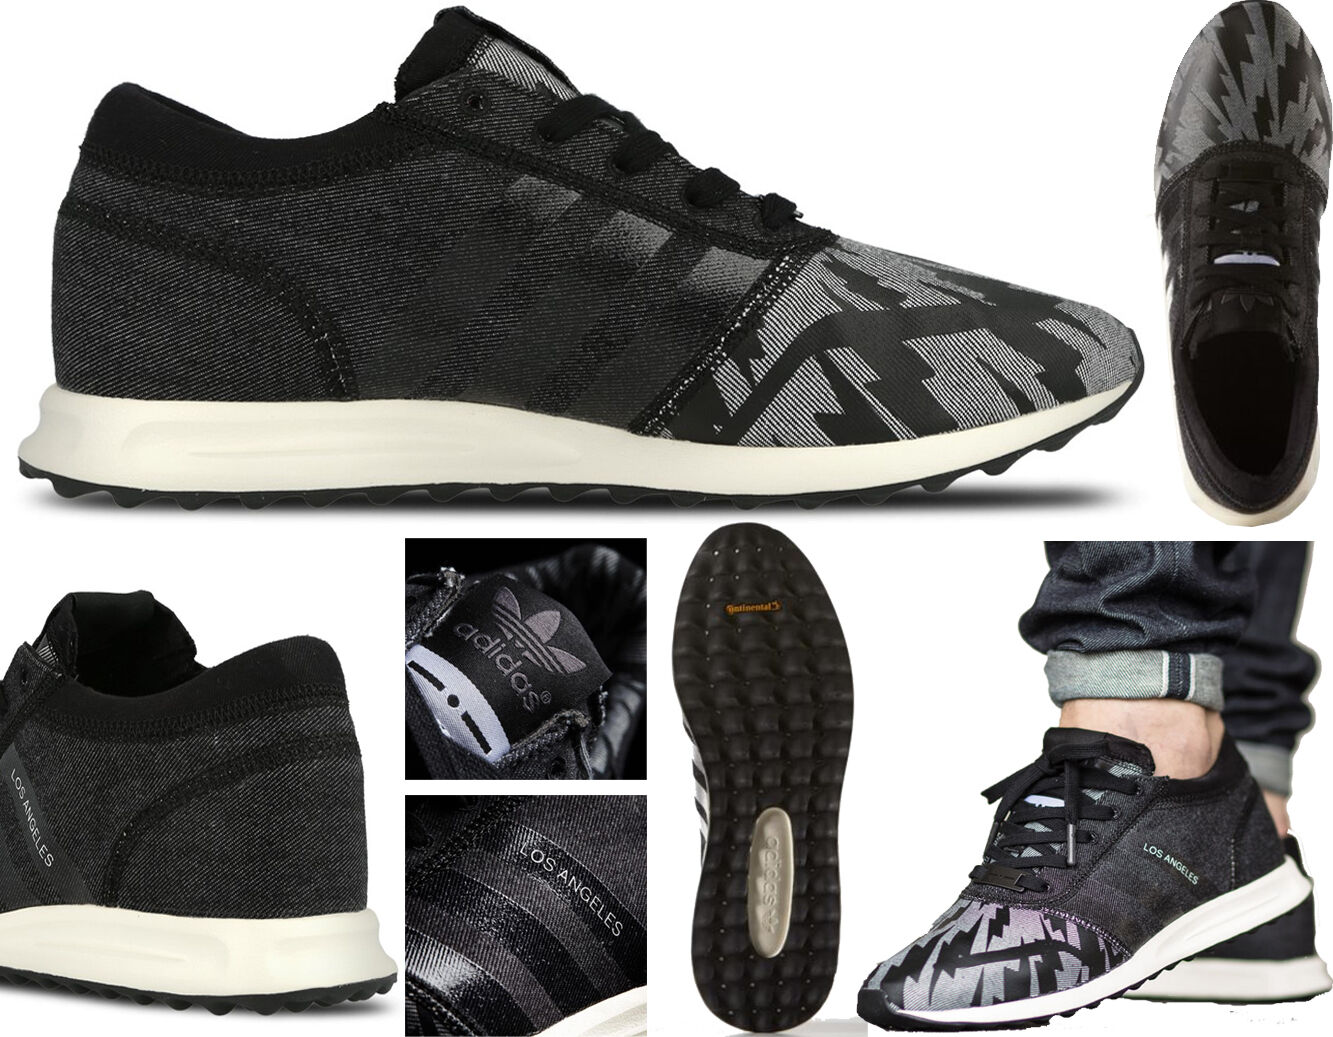 release date 10bd4 a836c Black S78367 LOS ANGELES - Adidas Trainers